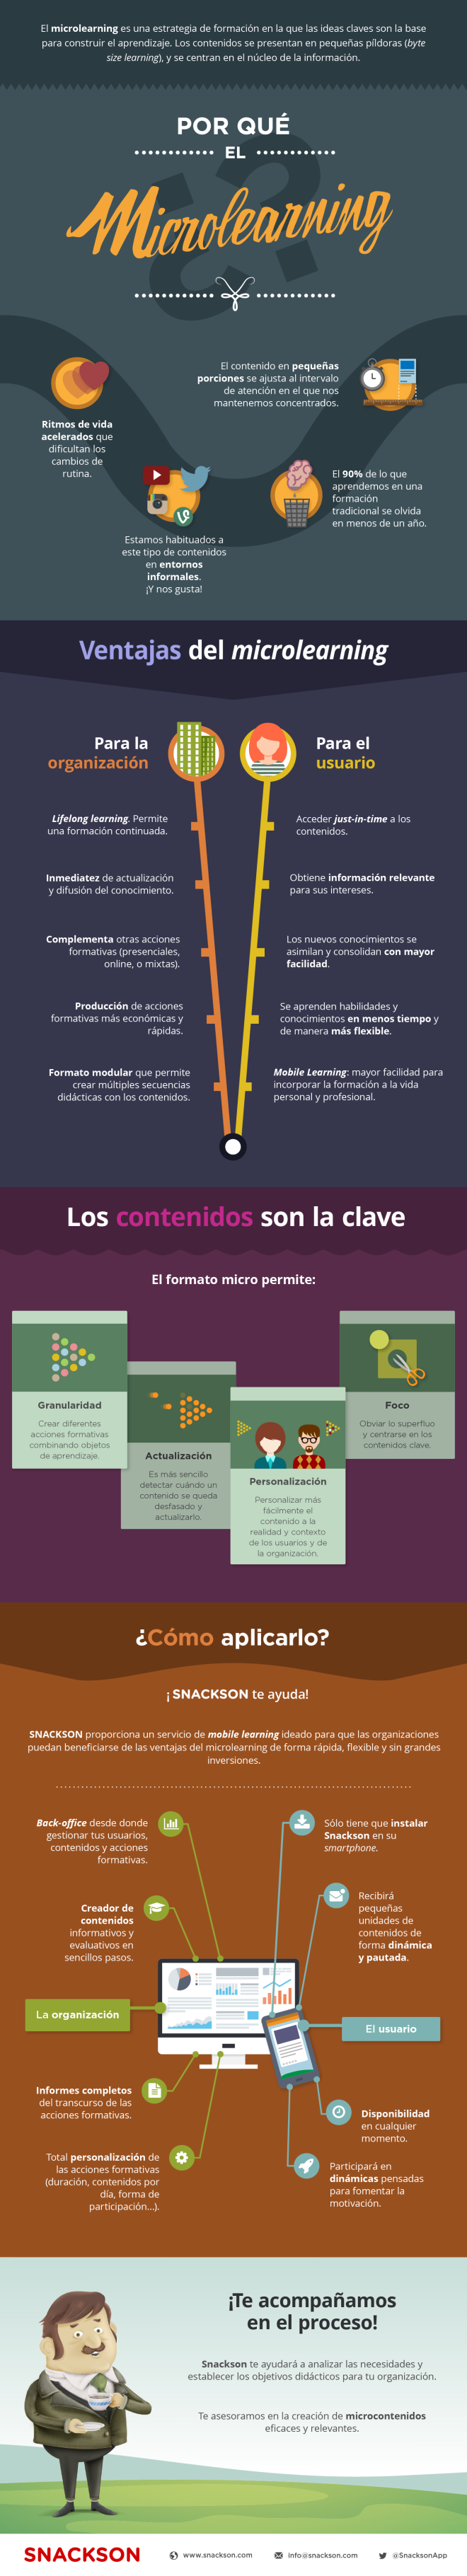 Microlearning: todo lo que debes saber